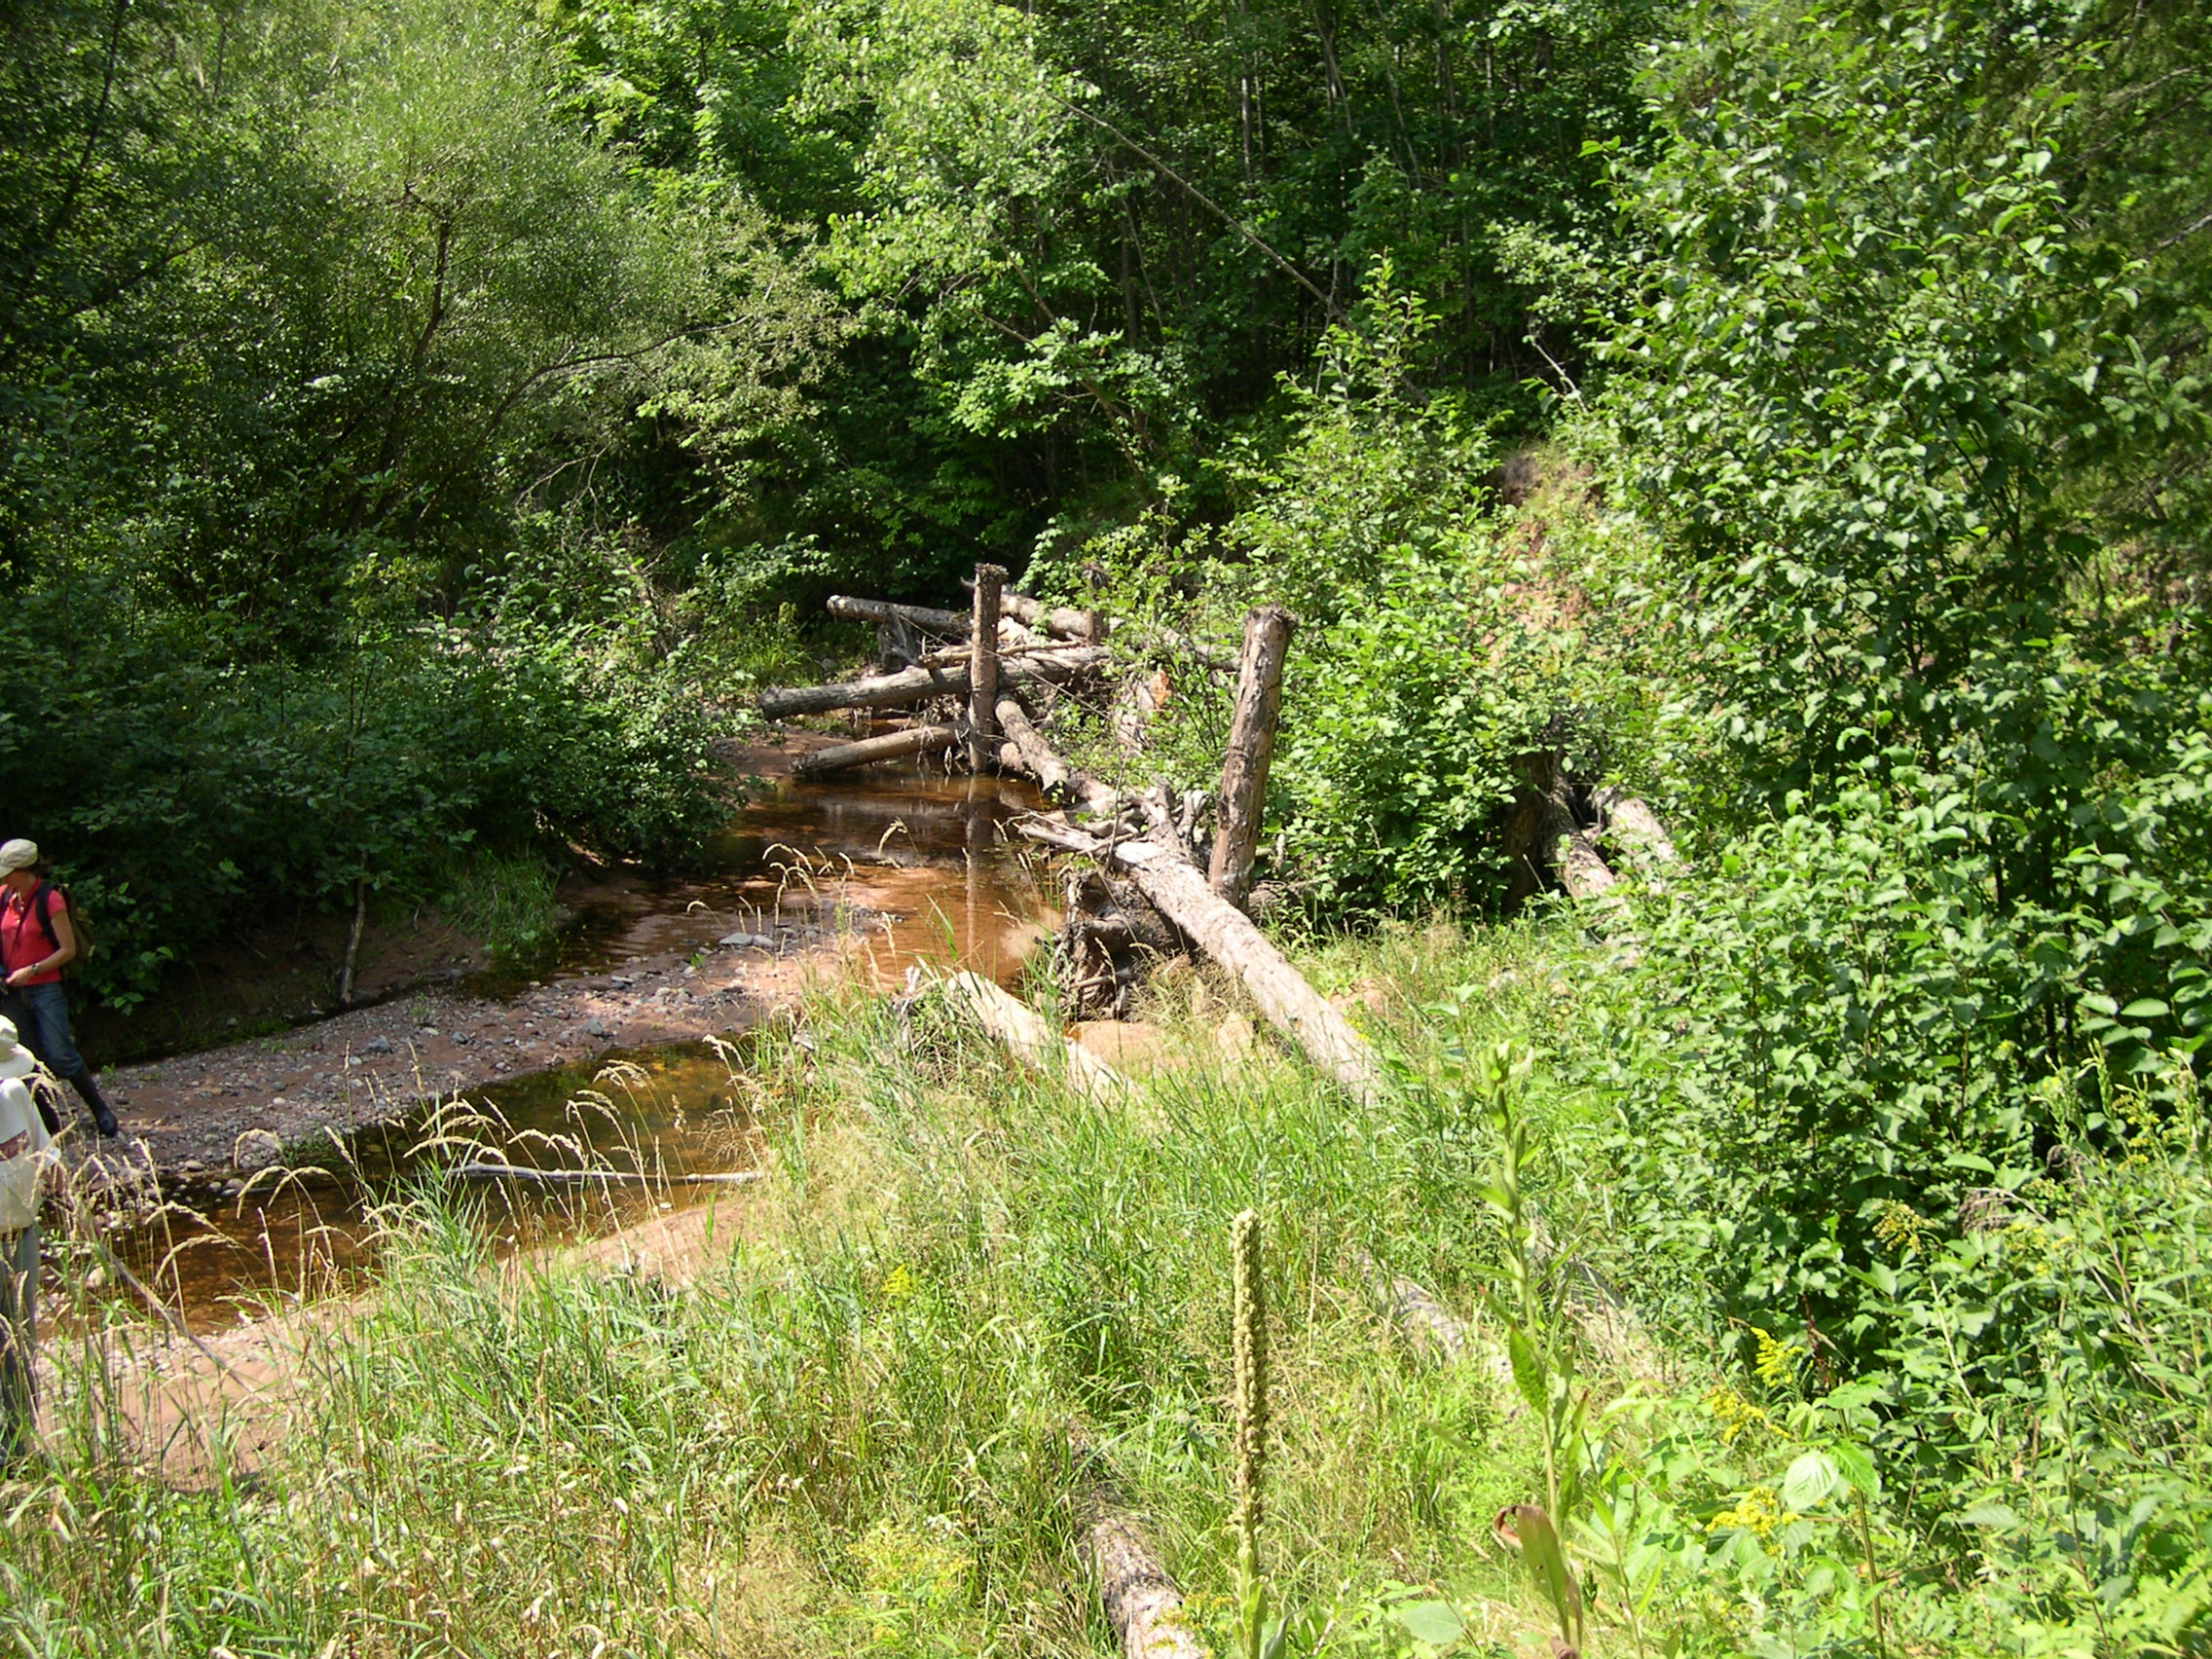 Results of stream restoration in the Lake Superior watershed.